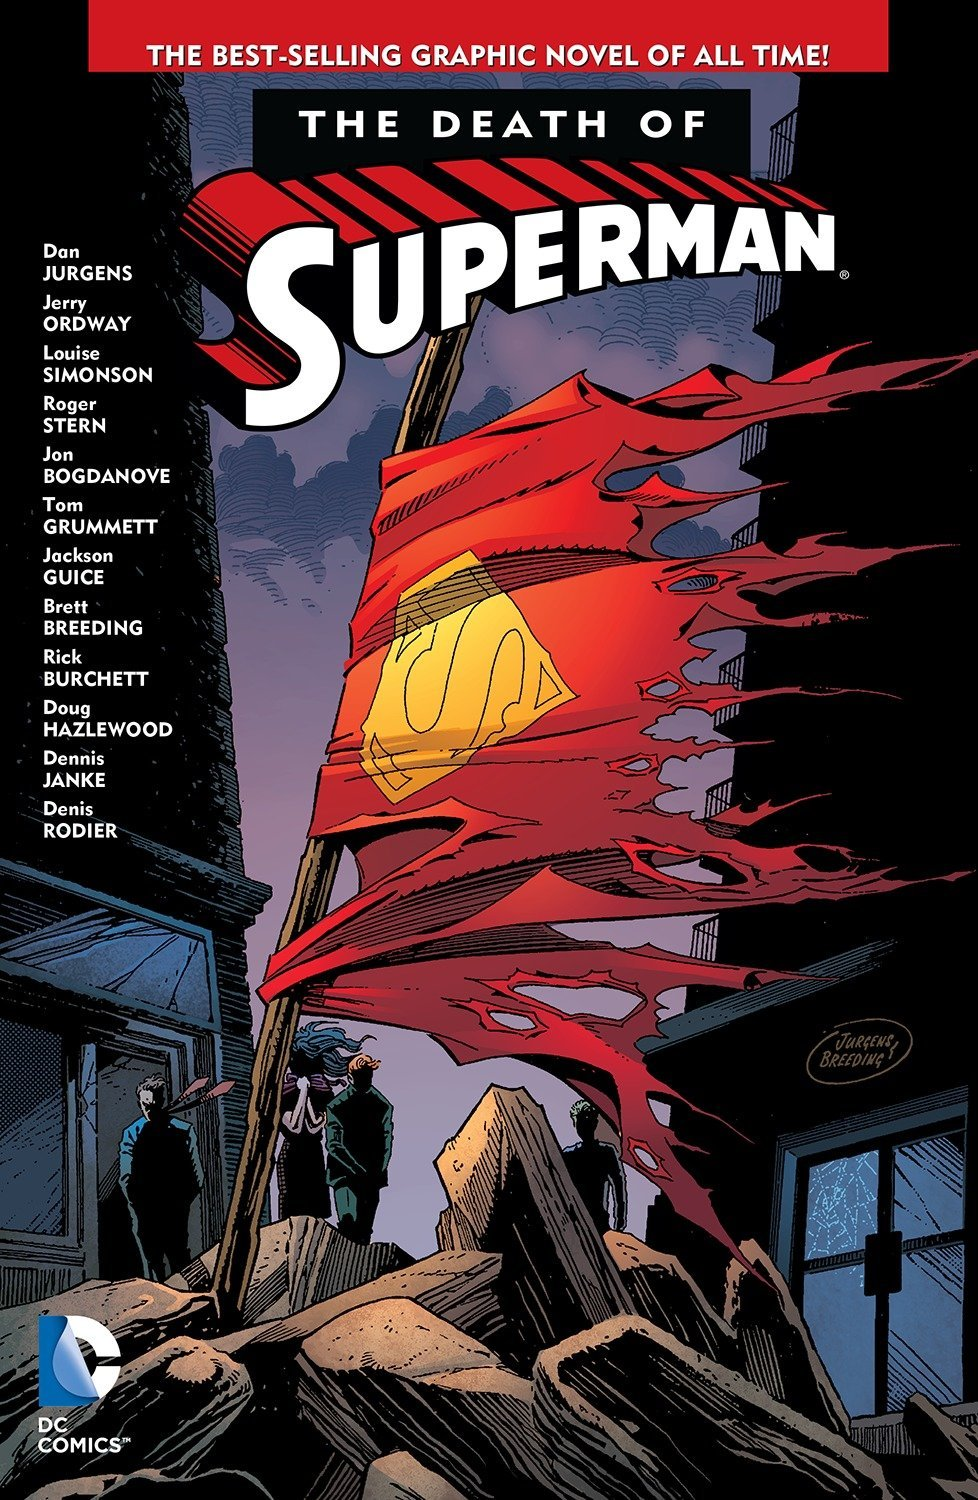 The Death of Superman by DC Comics